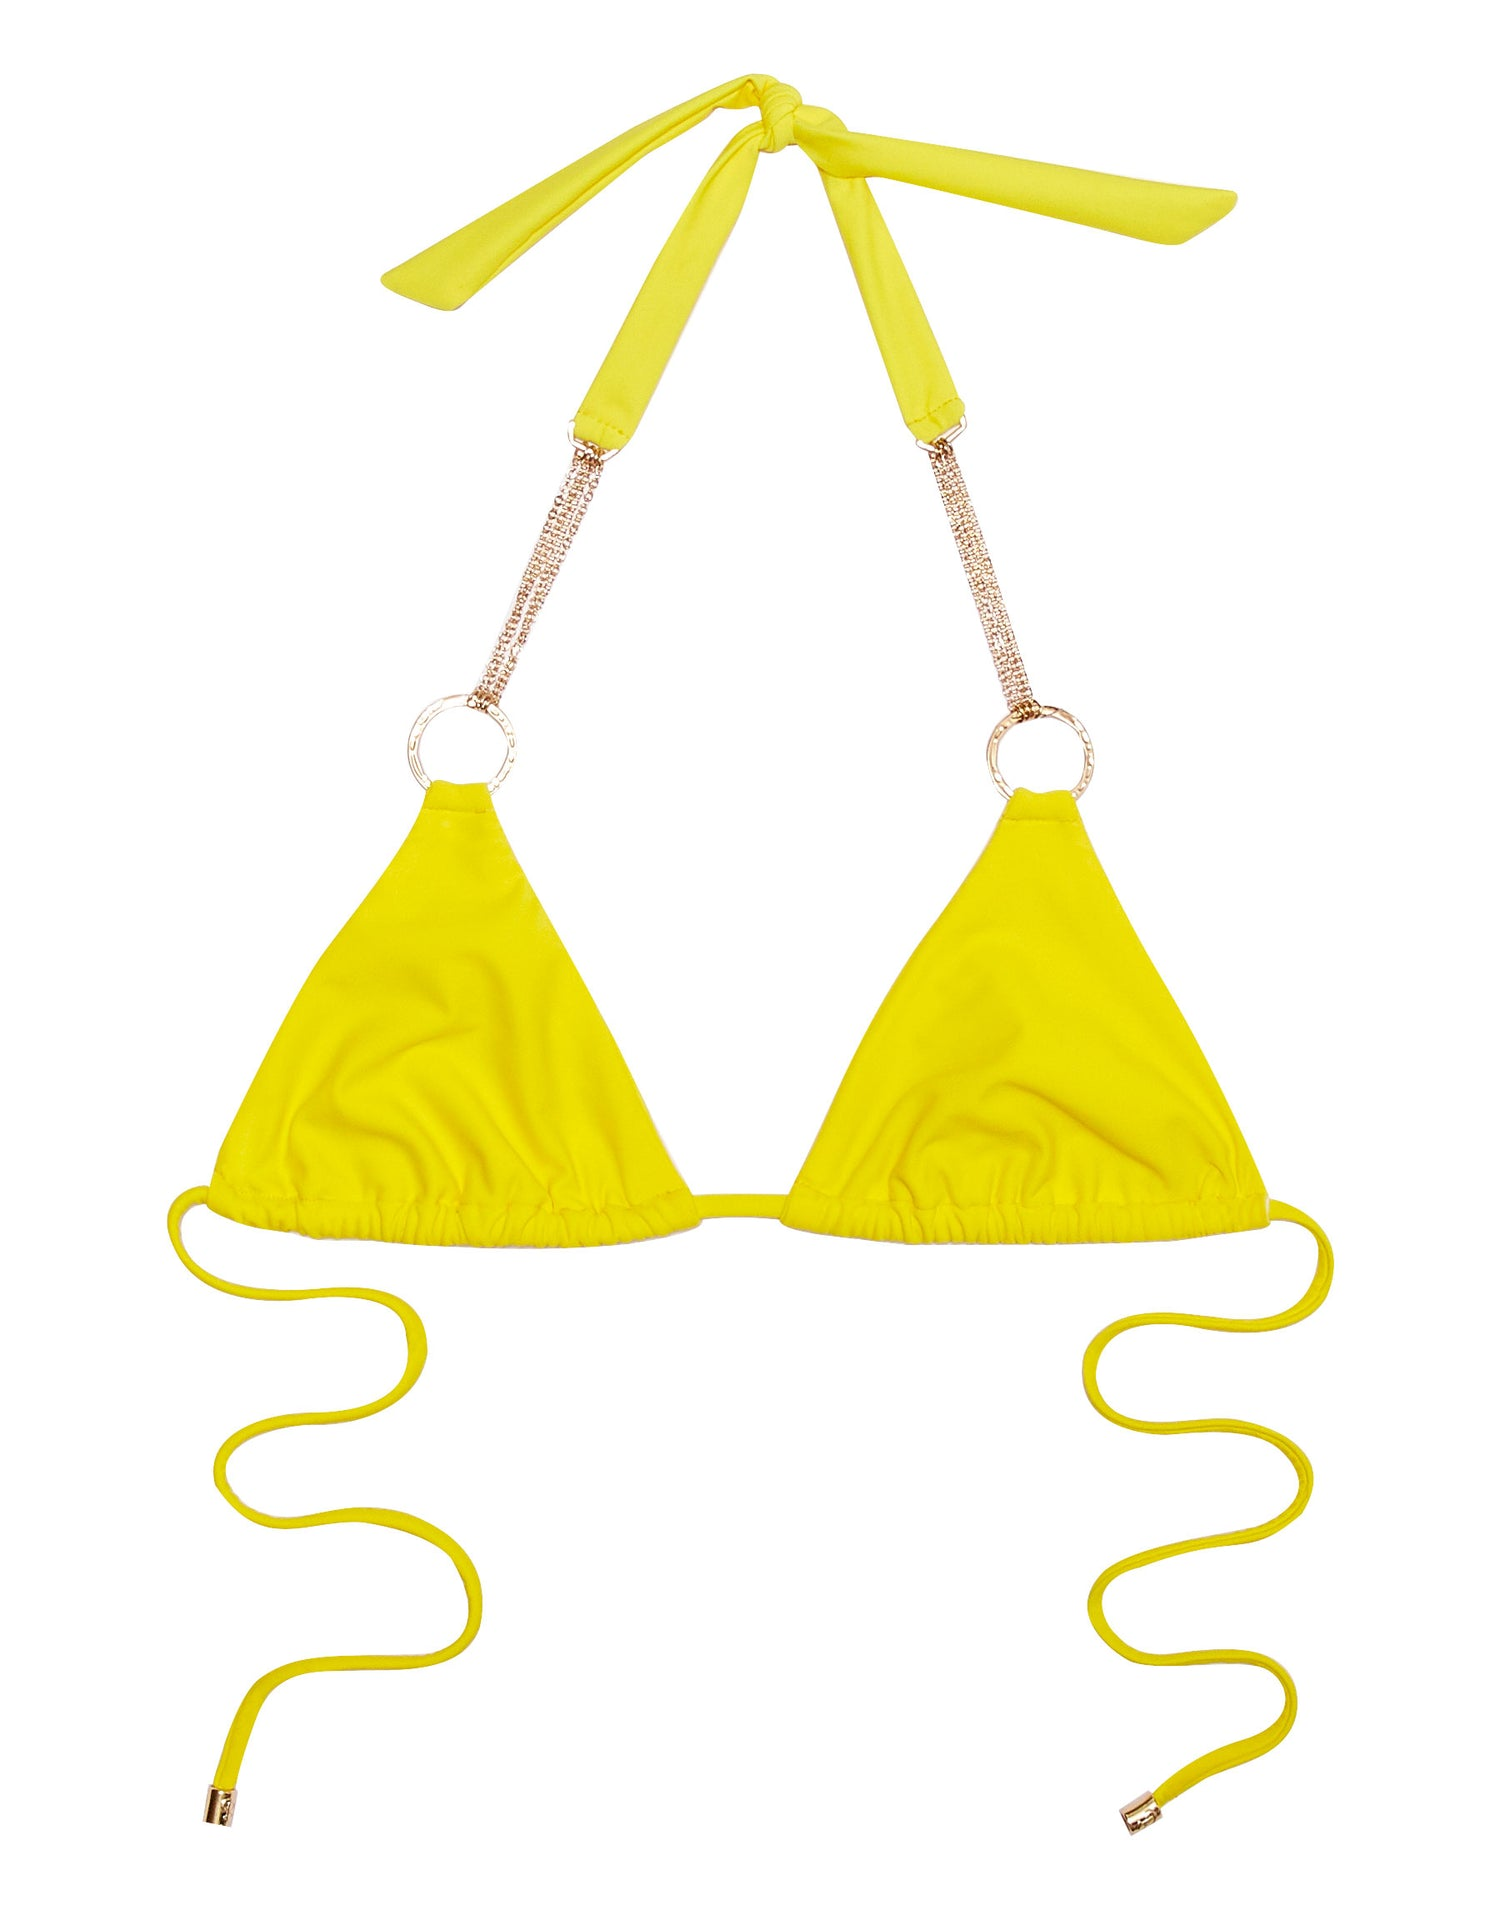 Zara Triangle Bikini Top in Sunshine Yellow with Gold Hardware - product view